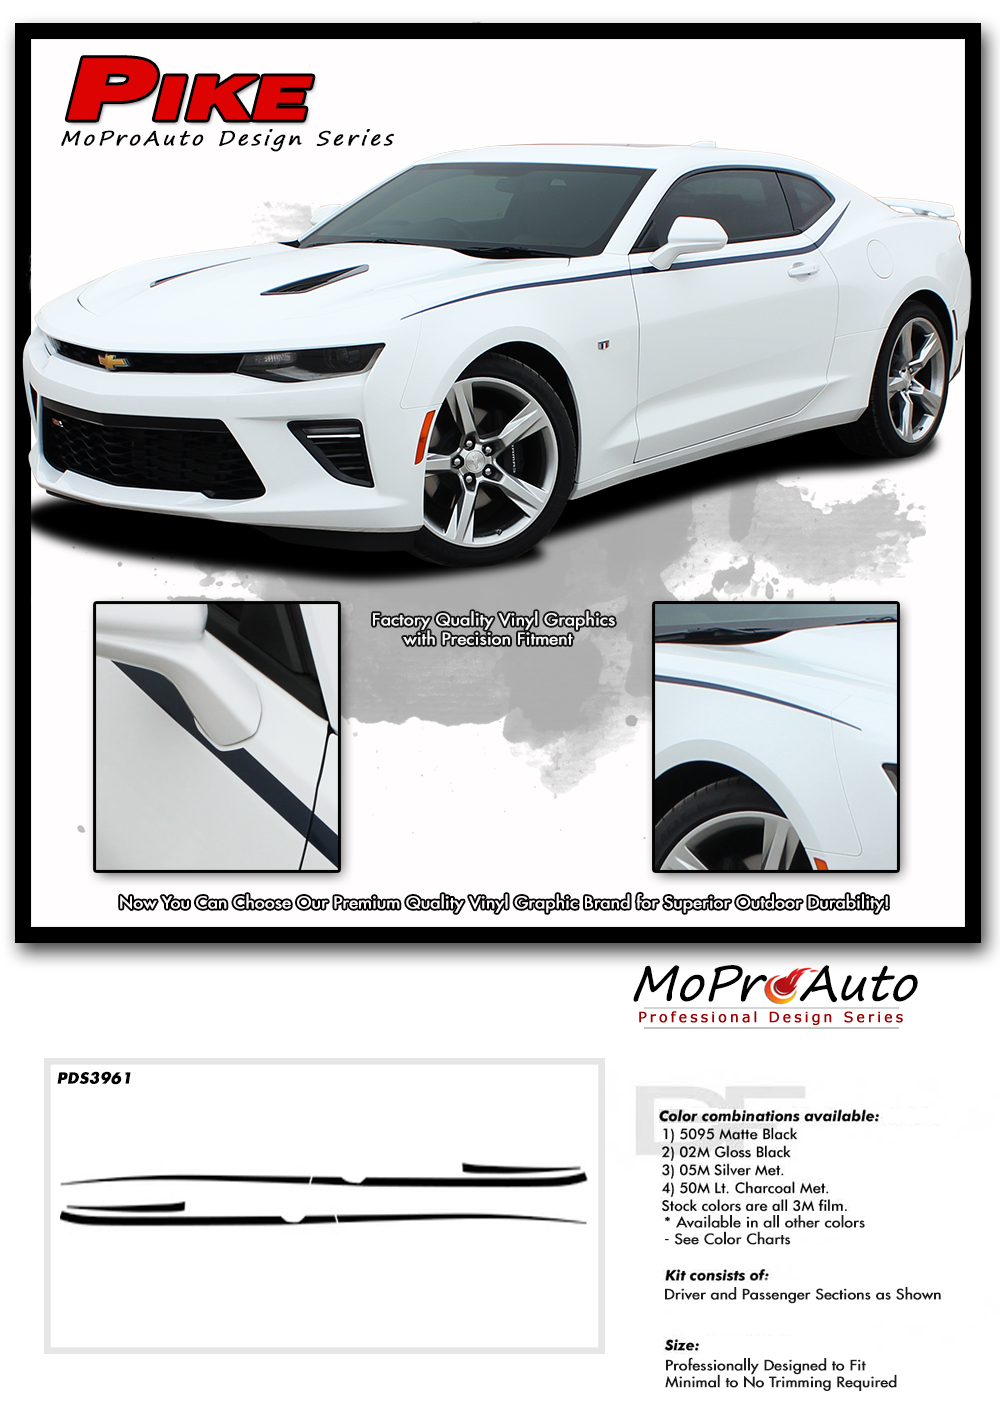 2016 2017 2018 Chevy SS RS Camaro PIKE Vinyl Graphics Kits, Decals, Stripes